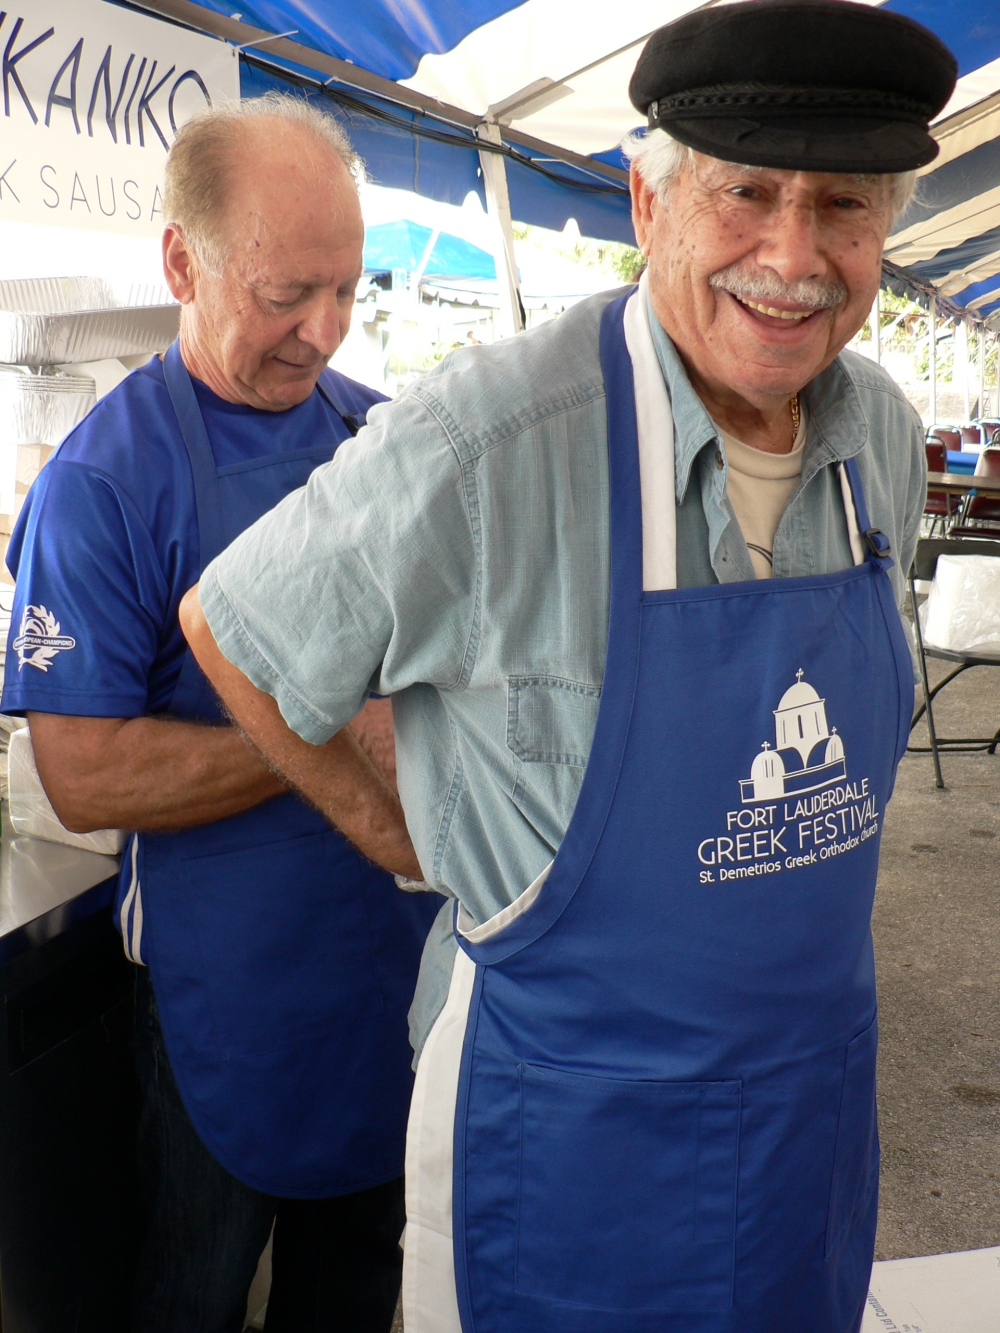 The czar of saganaki and loukaniko, Louie has been lighting Metaxa brandy to the delight of scores since the inception of the festival.  He makes a killer sandwich.  Watch your eyebrows.